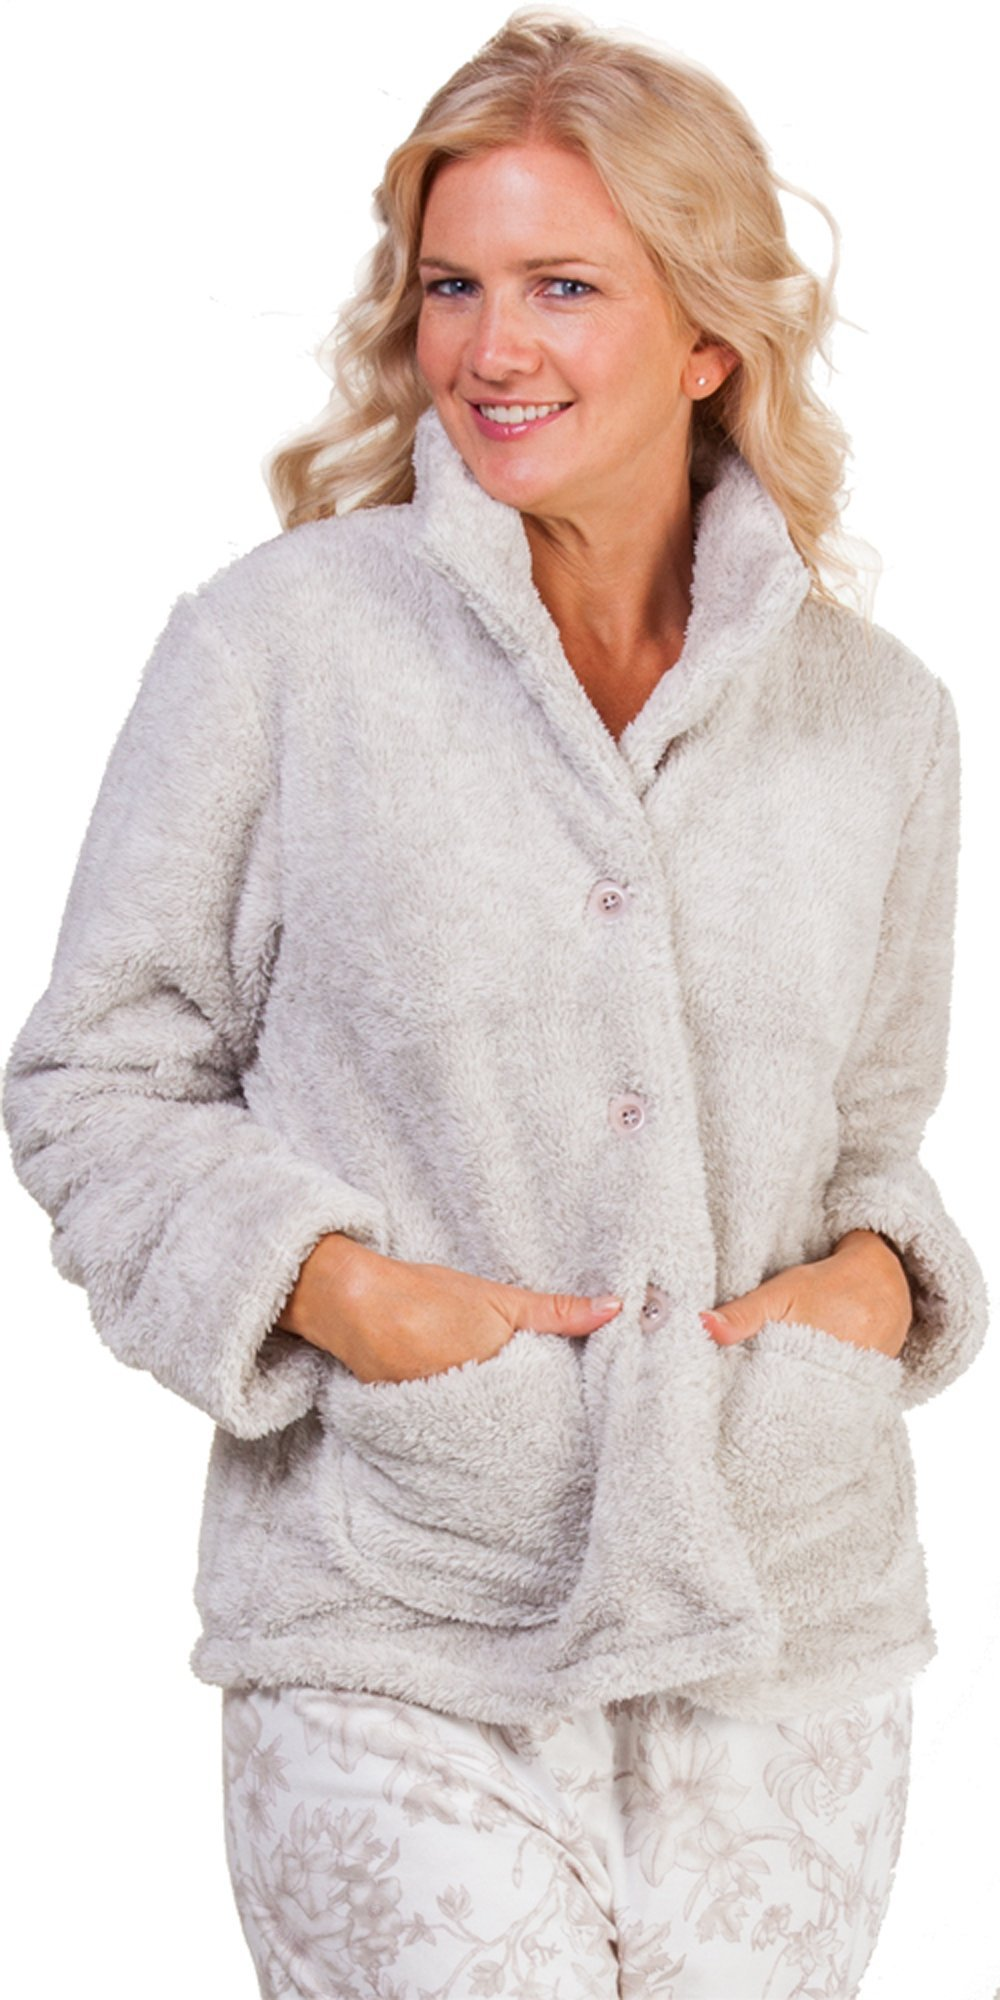 La Cera Mandarin Collar ''Deluxe Snuggle Fleece'' Bed Jacket in Taupe (Large (14-16), Taupe)